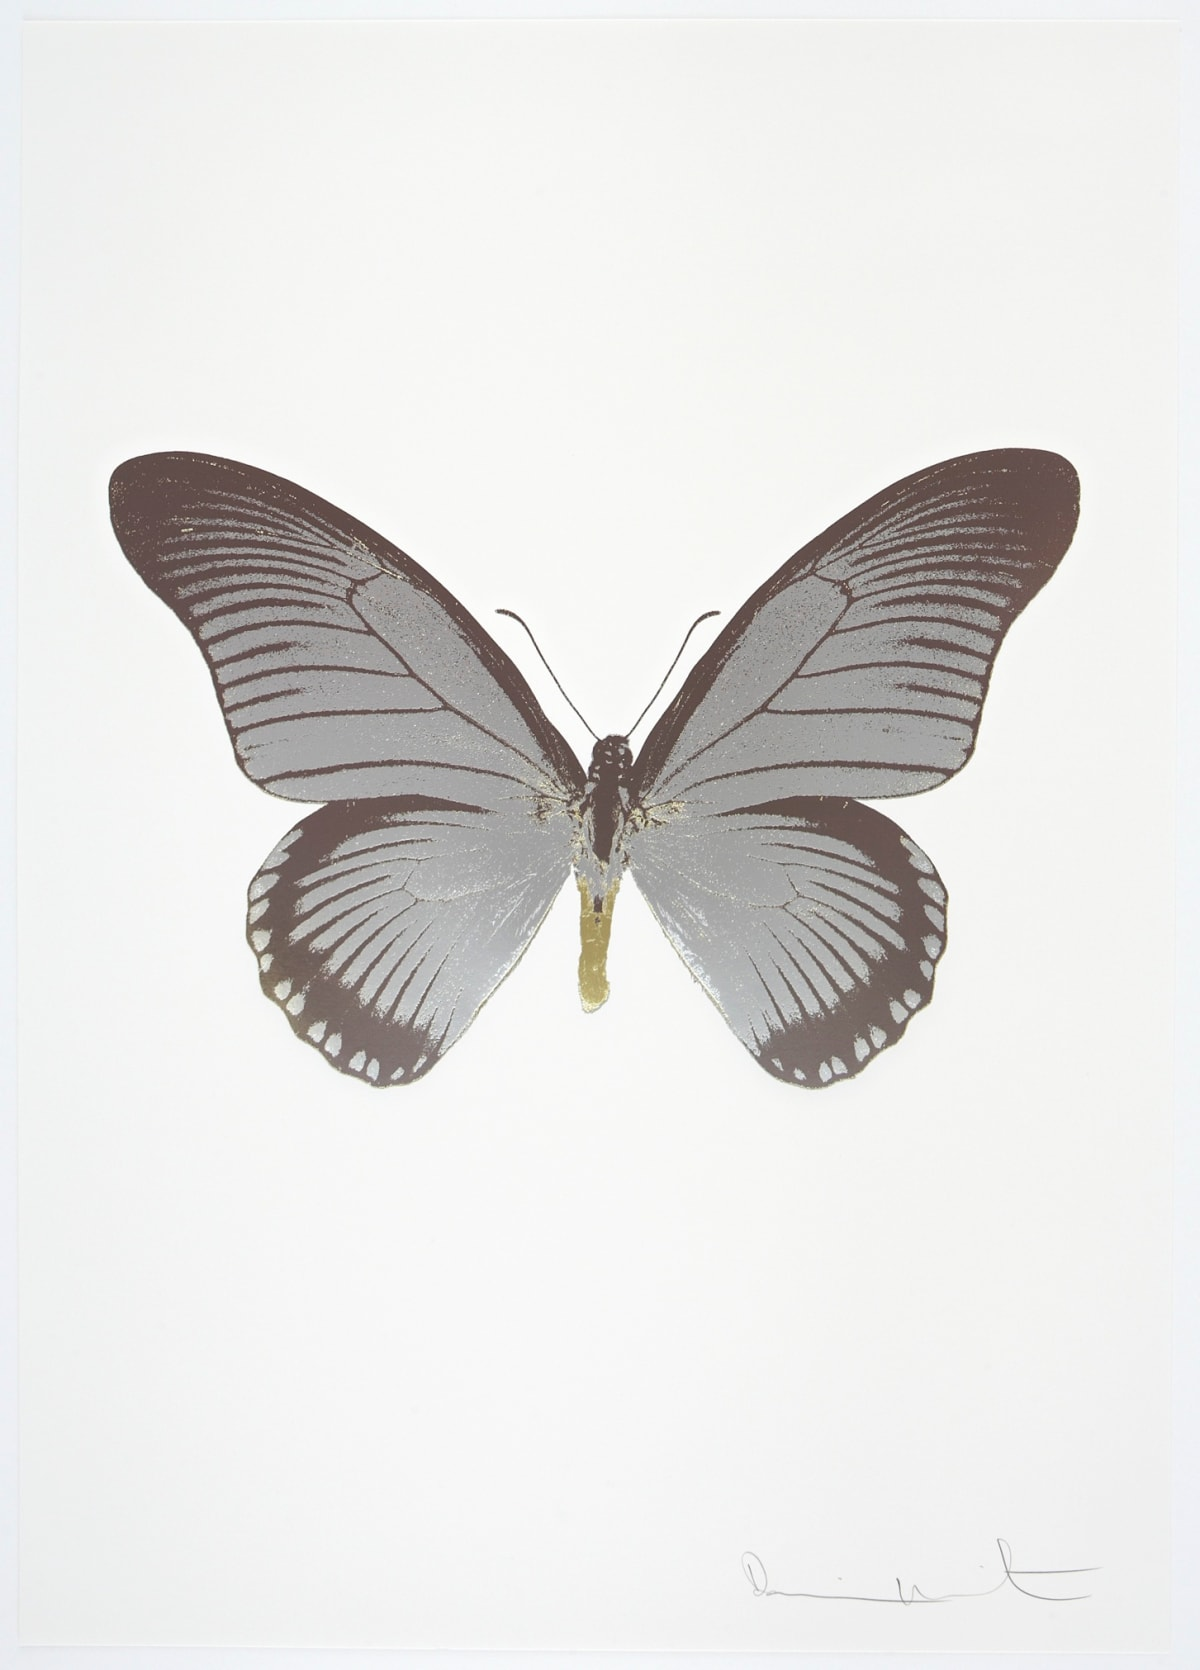 Damien Hirst The Souls IV - Silver Gloss/Gunmetal/Cool Gold Damien Hirst butterfly foil print for sale Damien Hirst print for sale , 2010 3 colour foil block on 300gsm Arches 88 archival paper. Signed and numbered. Published by Paul Stolper and Other Criteria 72 x 51cm OC7981 / 1418-4 Edition of 15